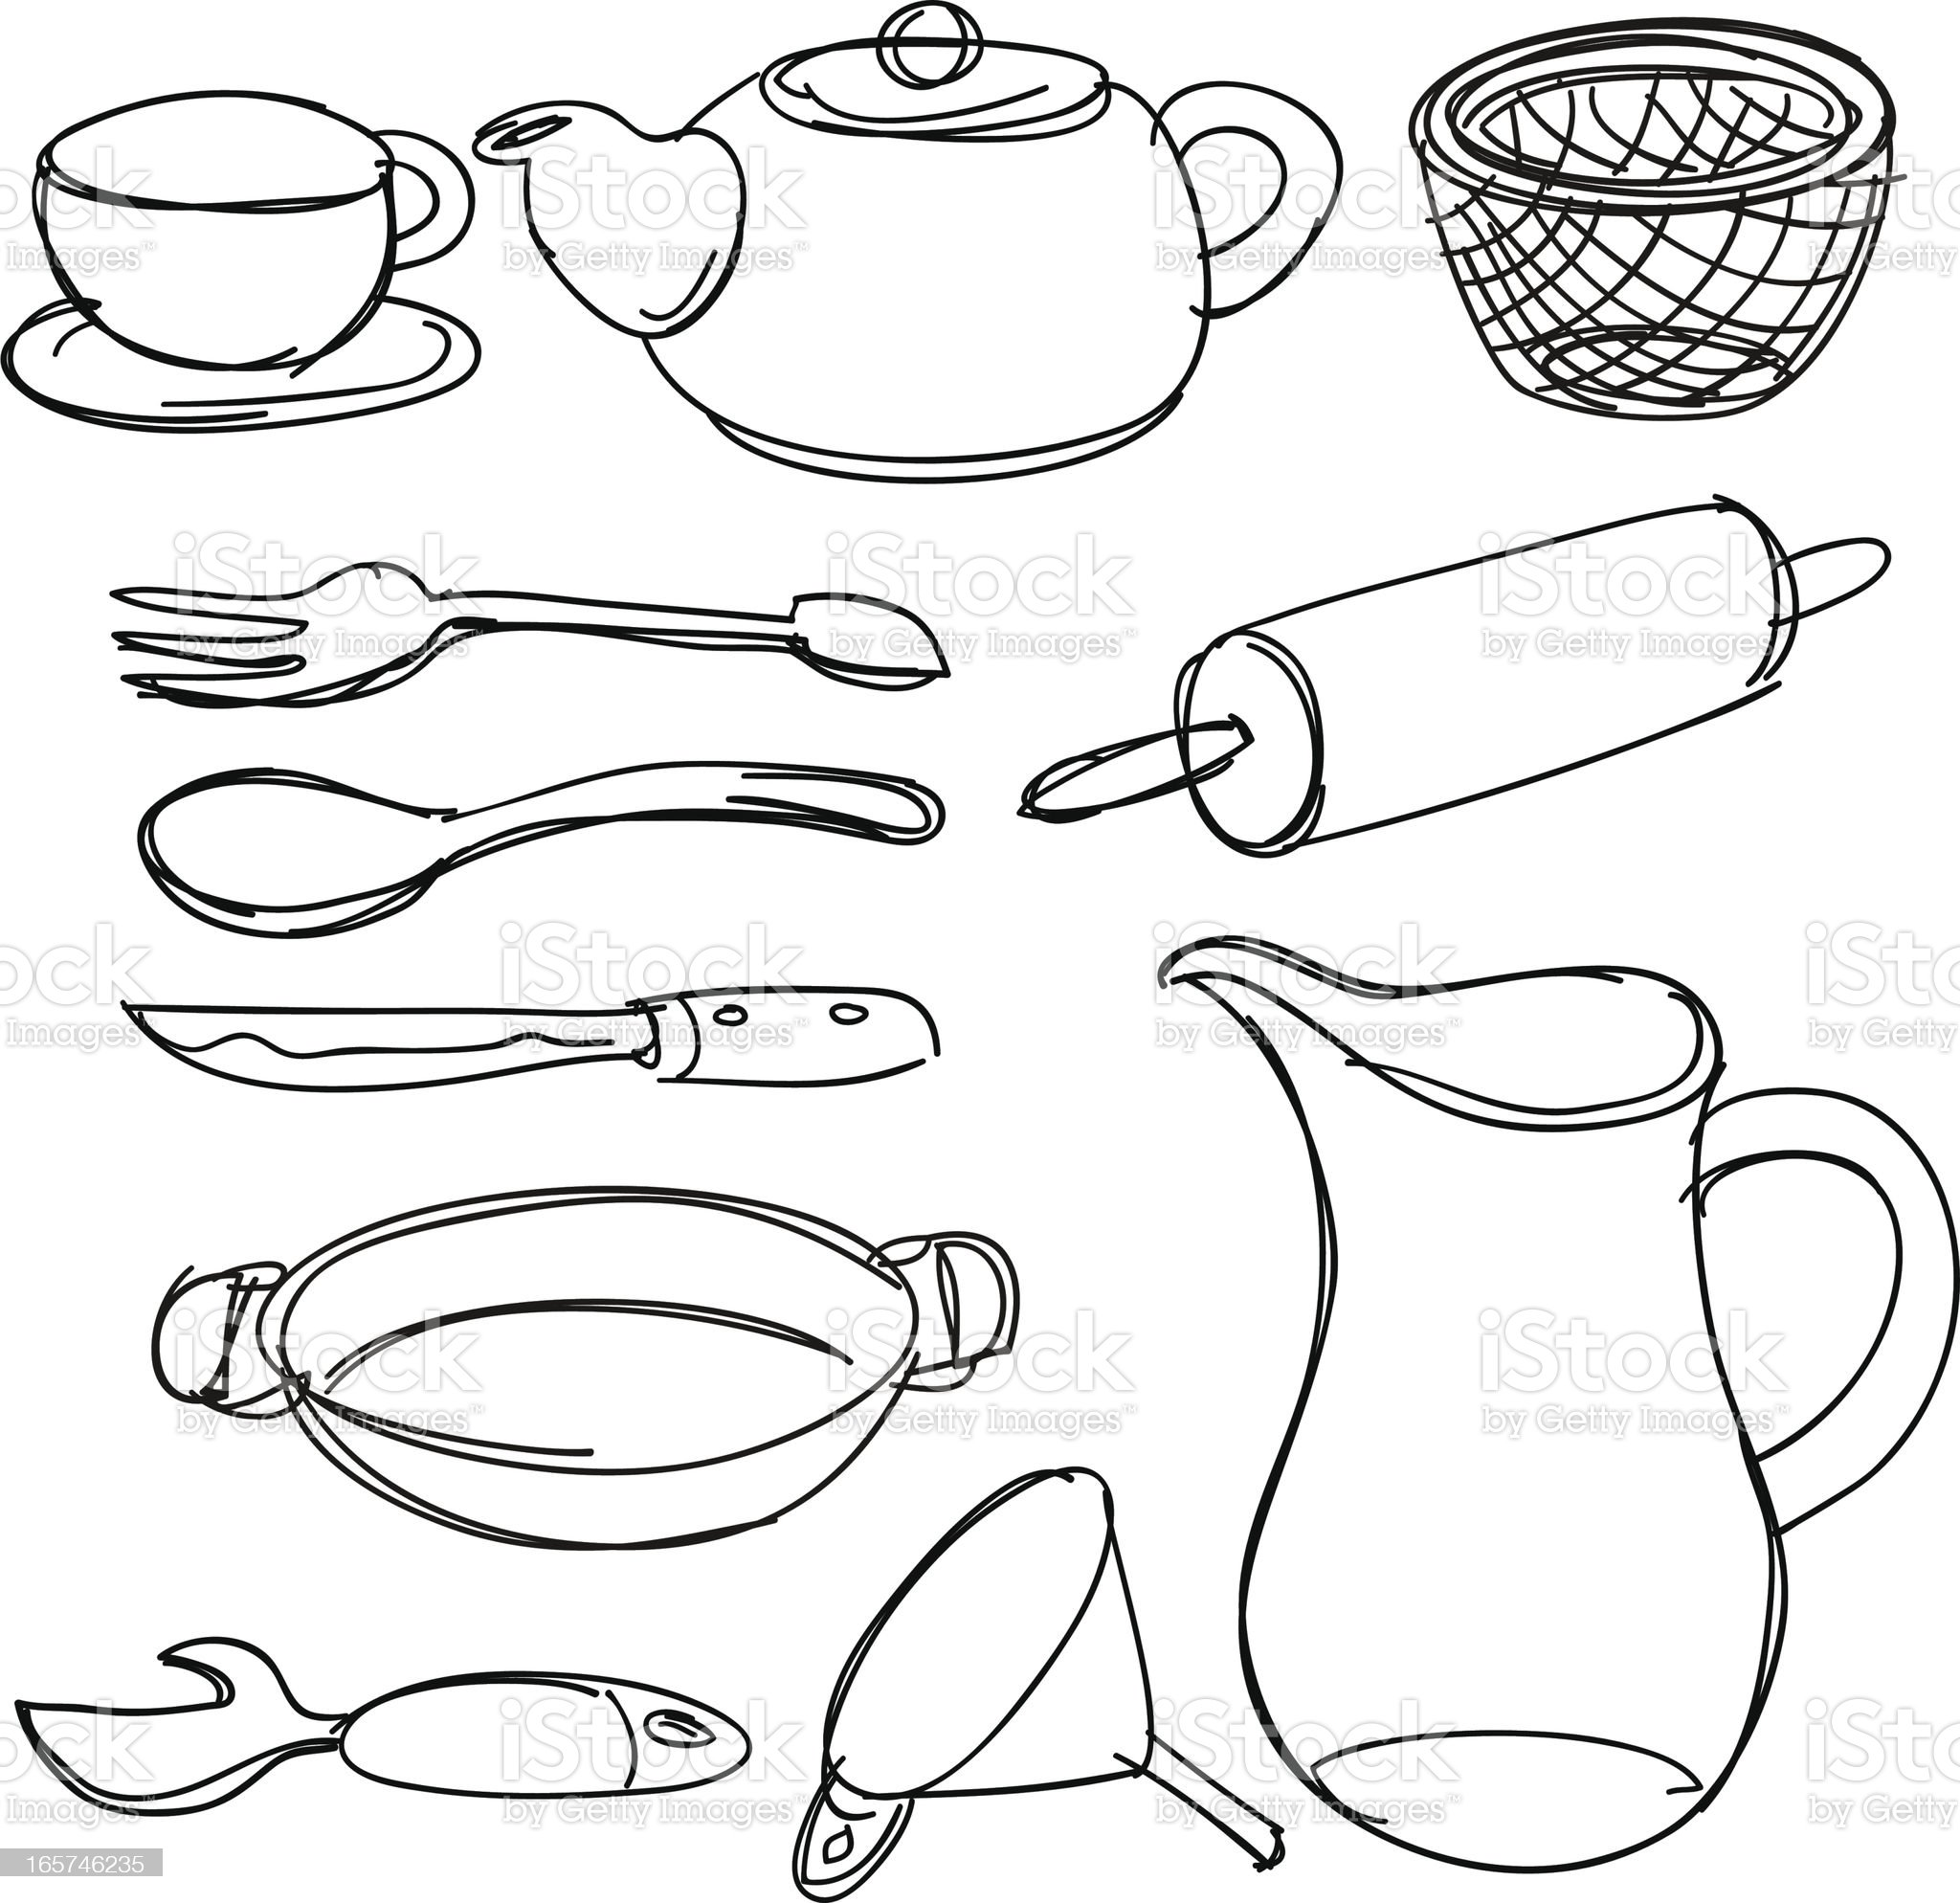 Kitchen utencils collection royalty-free stock vector art